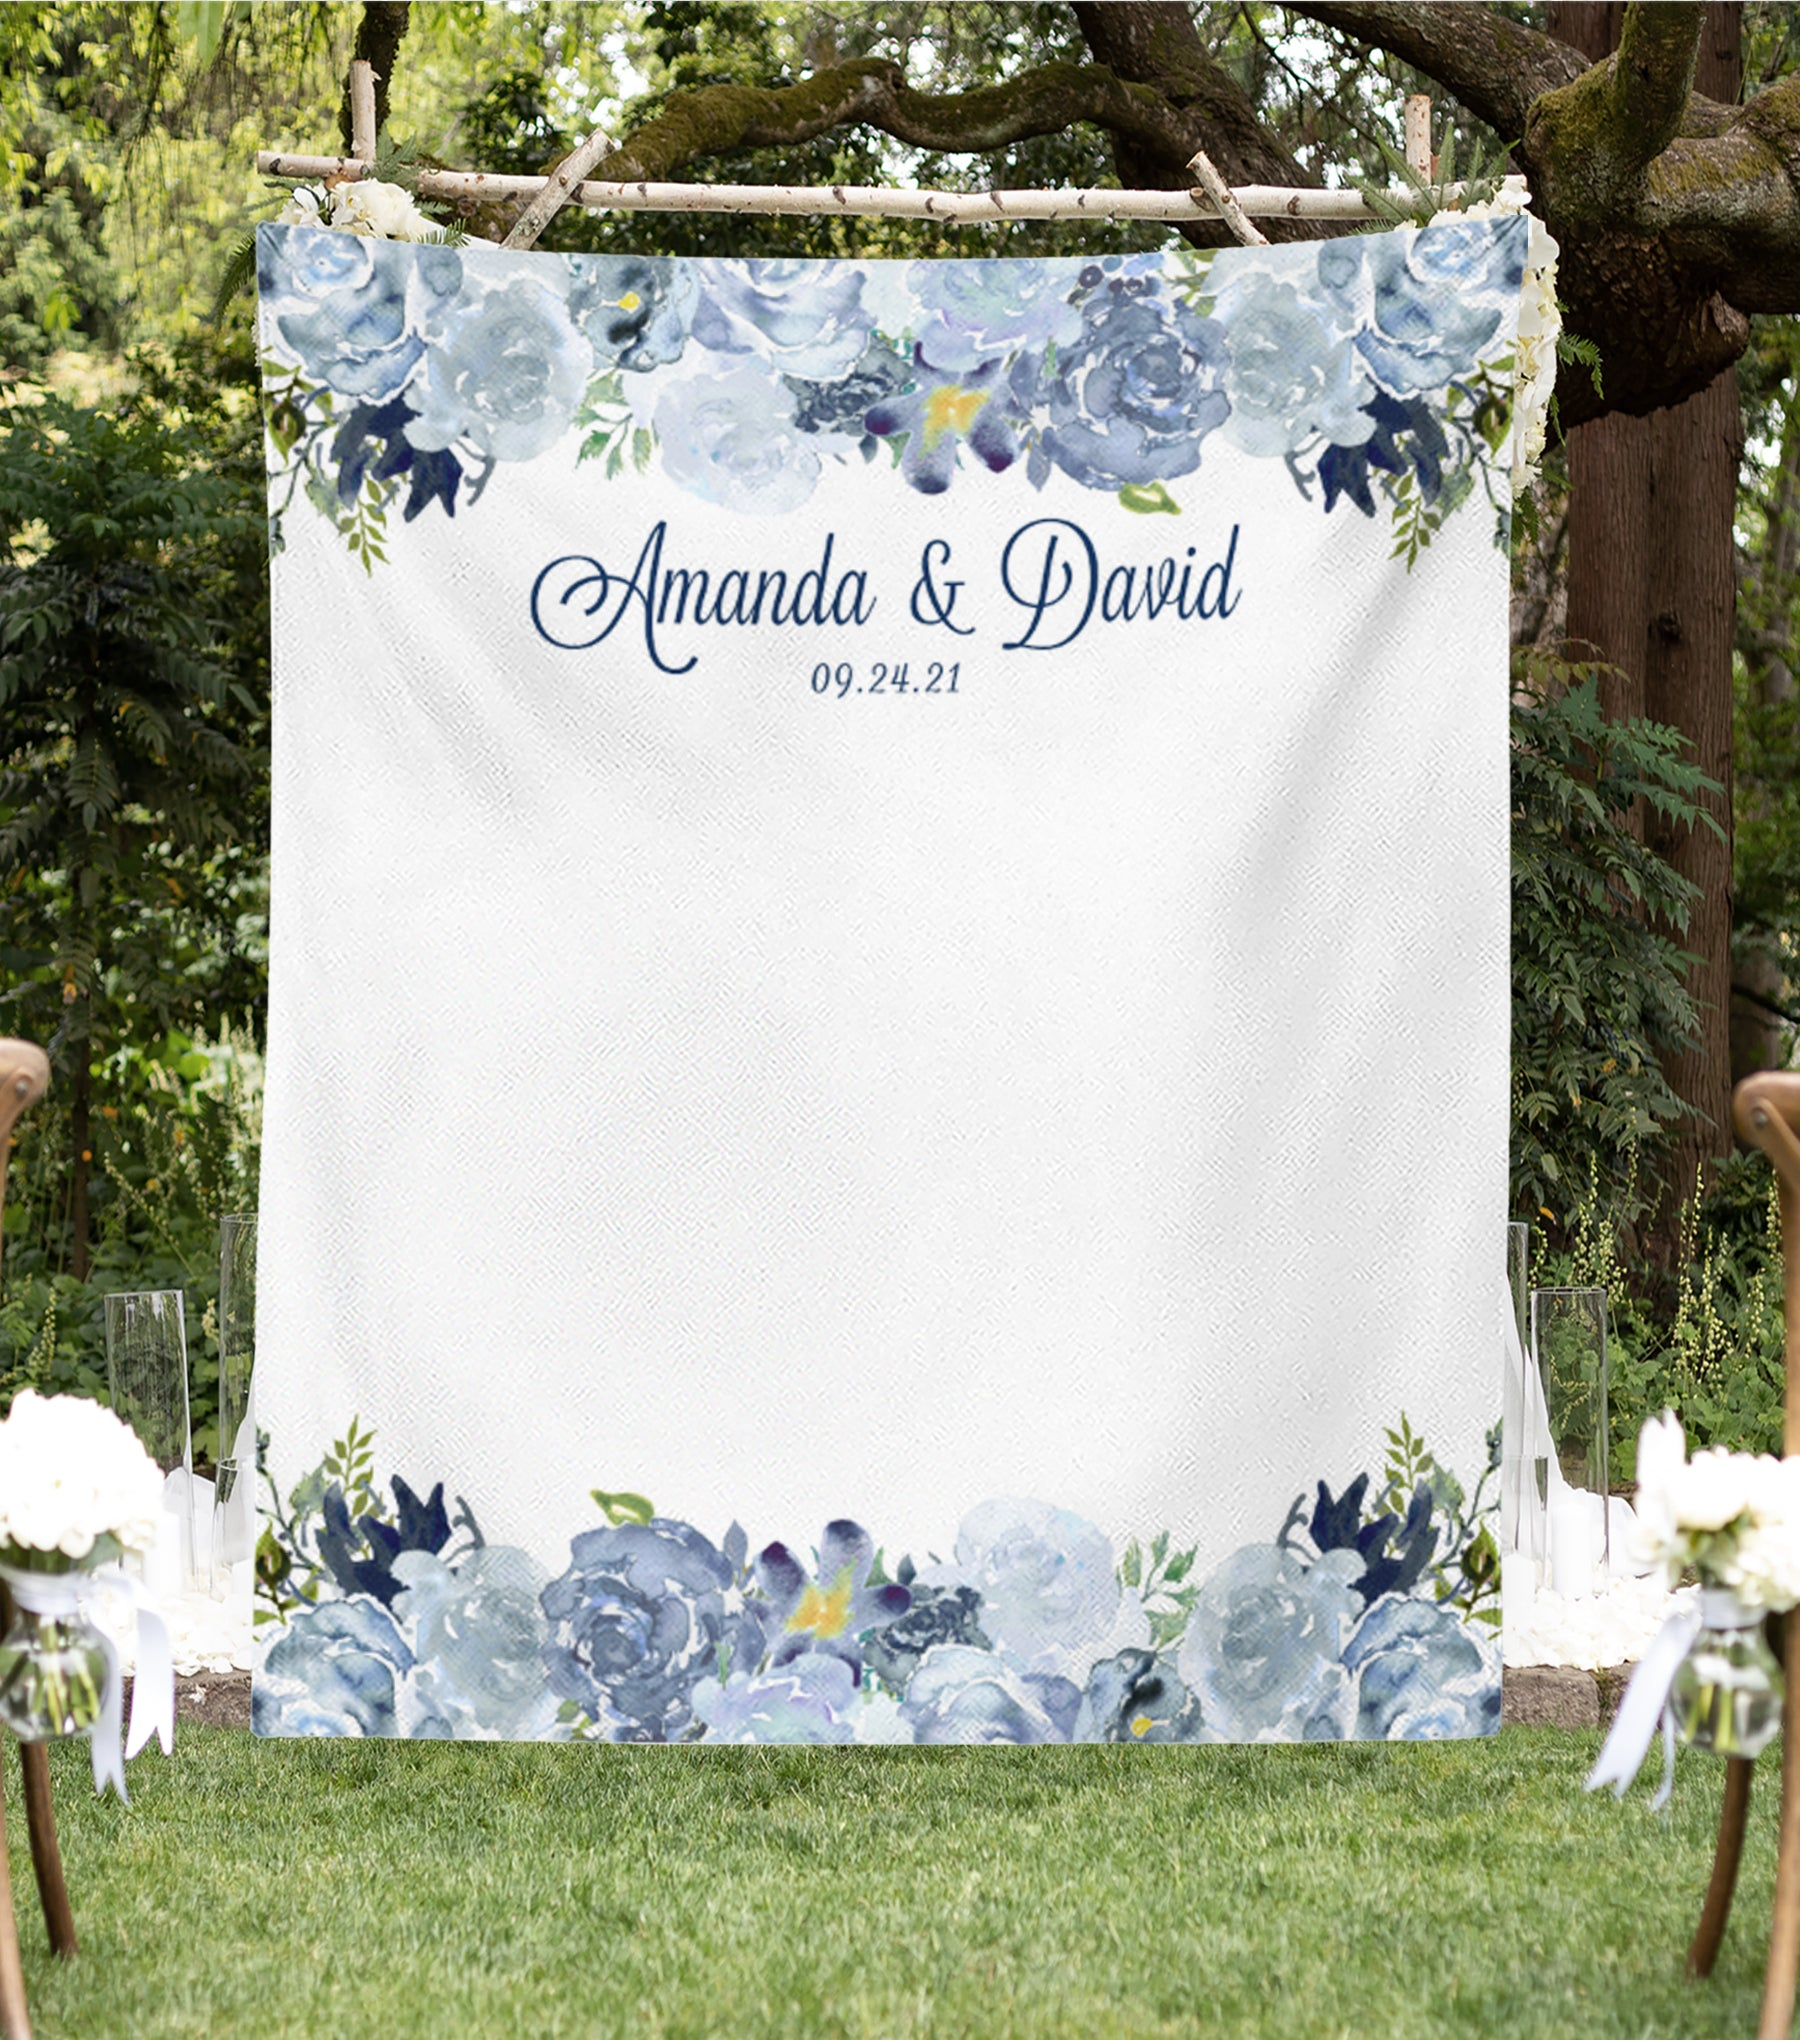 Wedding Photography Booth Ideas.Dusty Blue Wedding Photo Booth Backdrop For Sale Blushing Drops